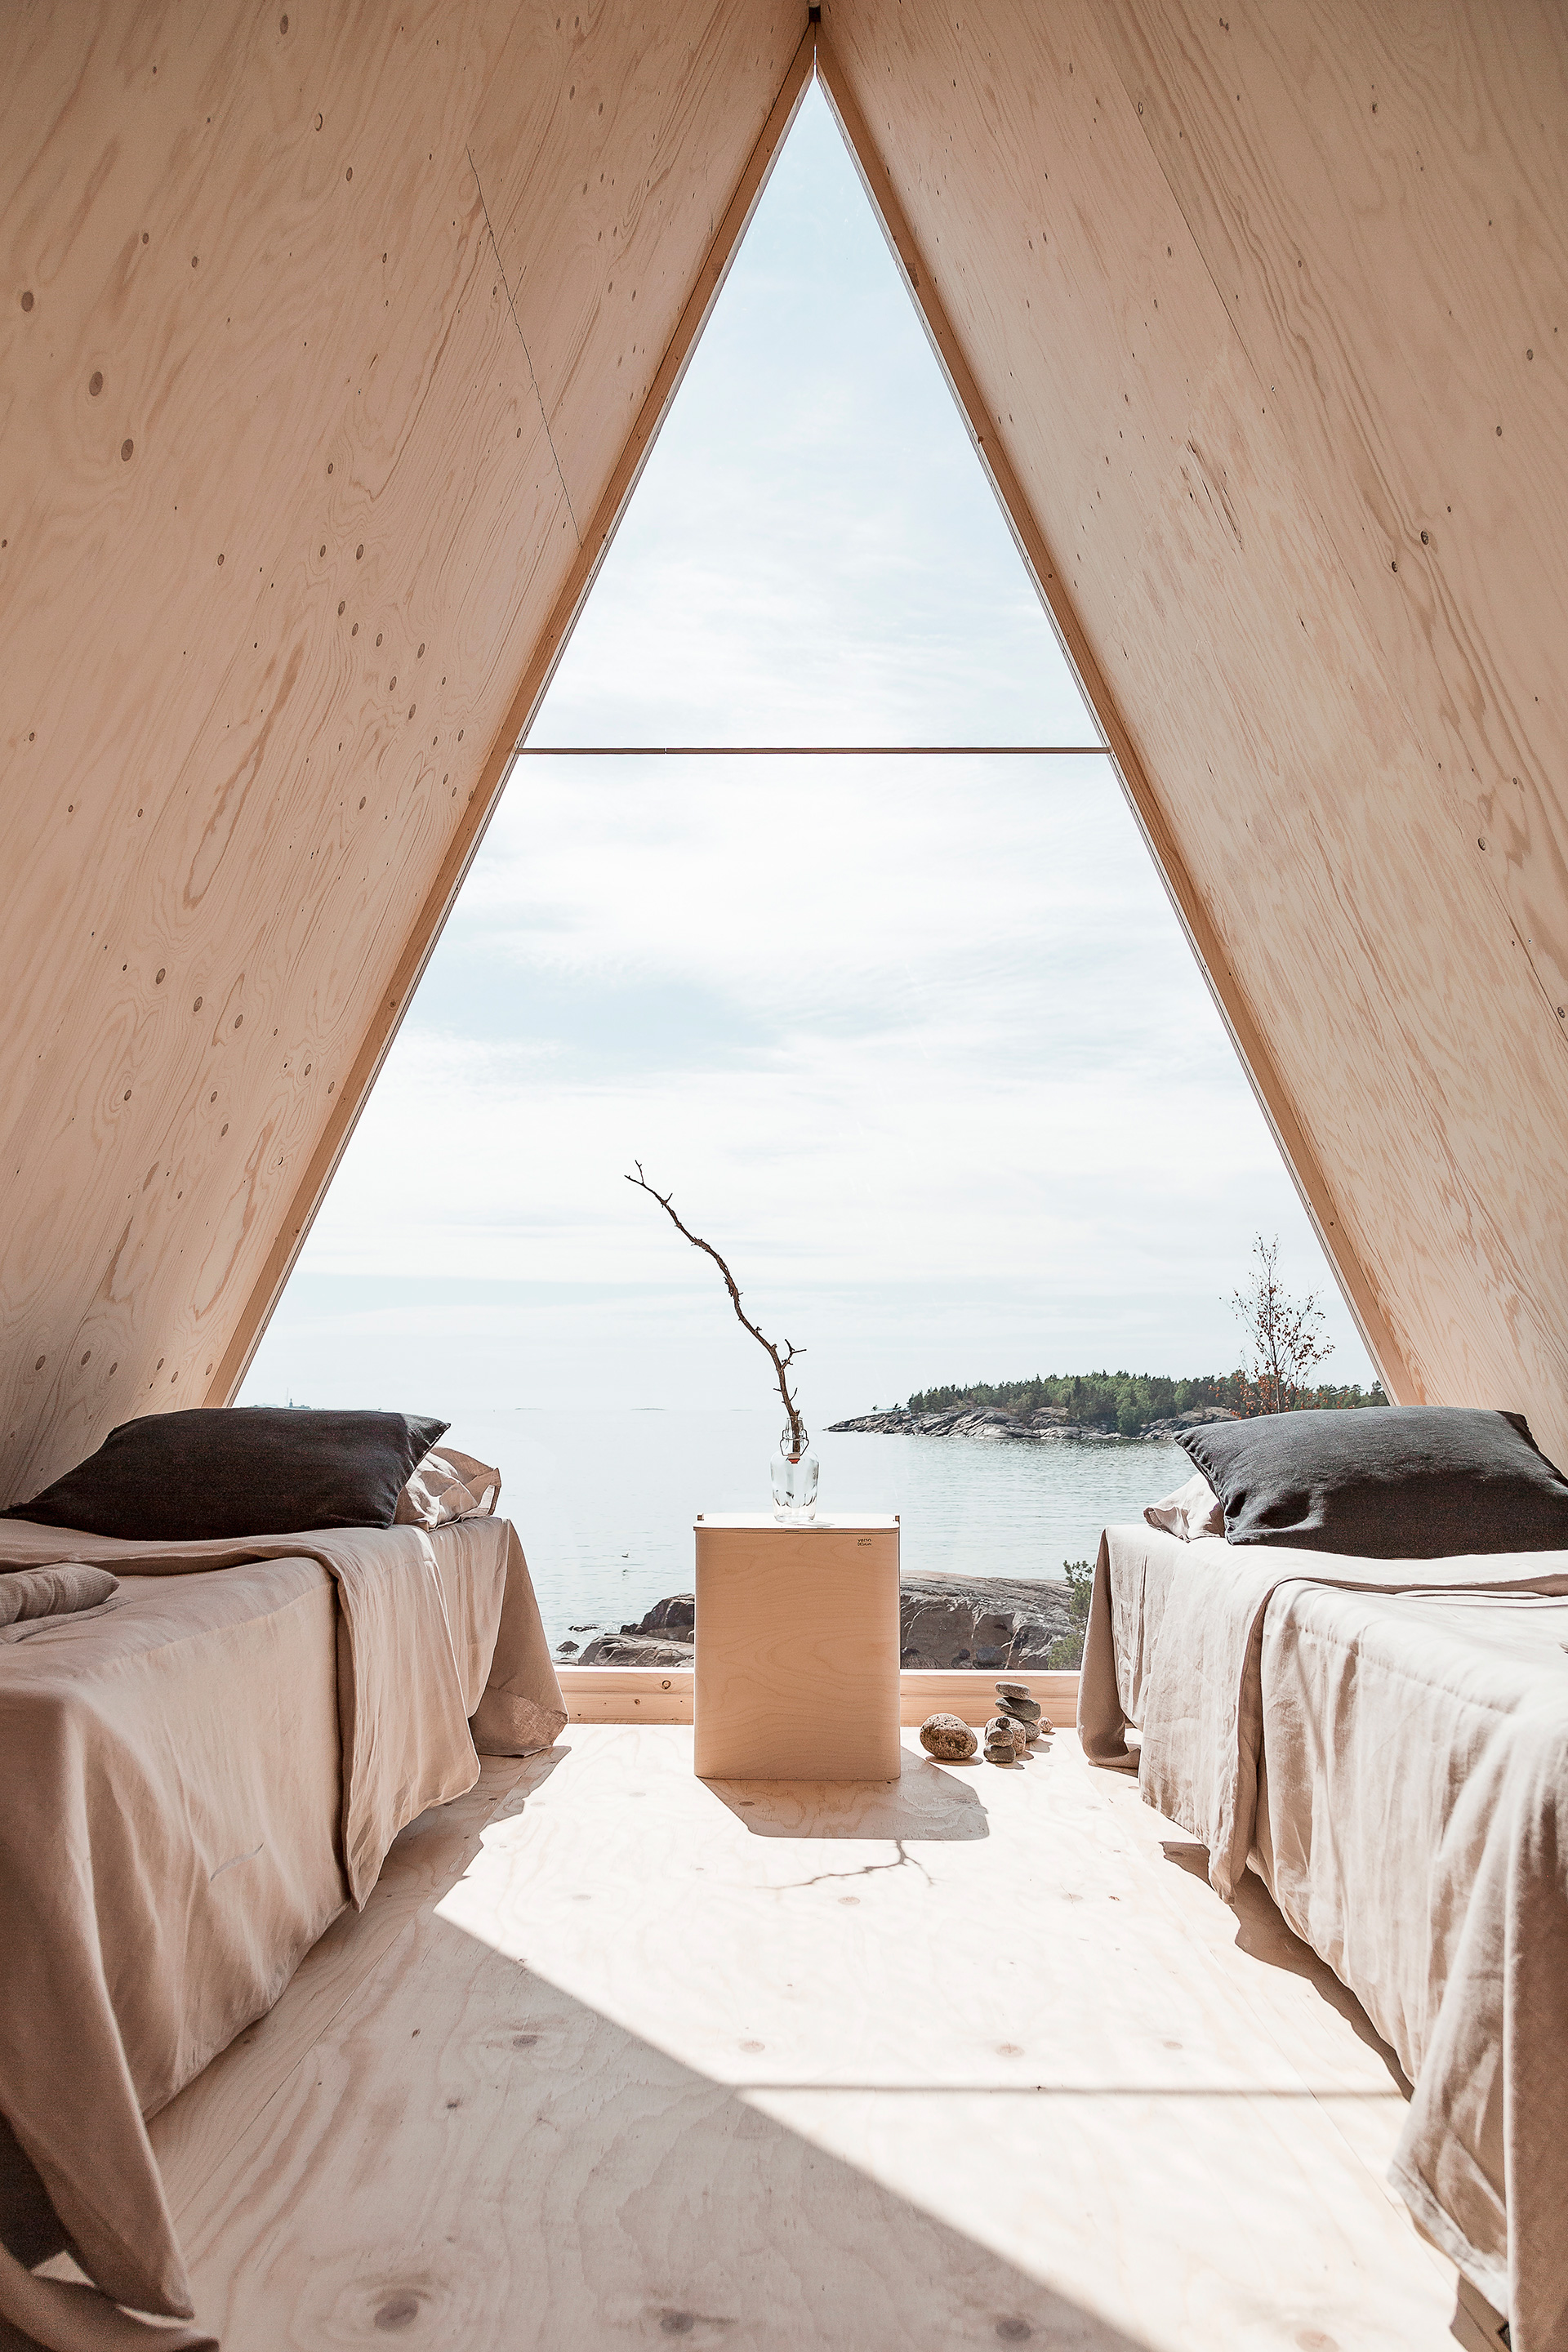 The cabin is the size of a small bedroom, with two camping beds and a stunning view outside| Diversity in living, a changing lifestyle| STIRworld